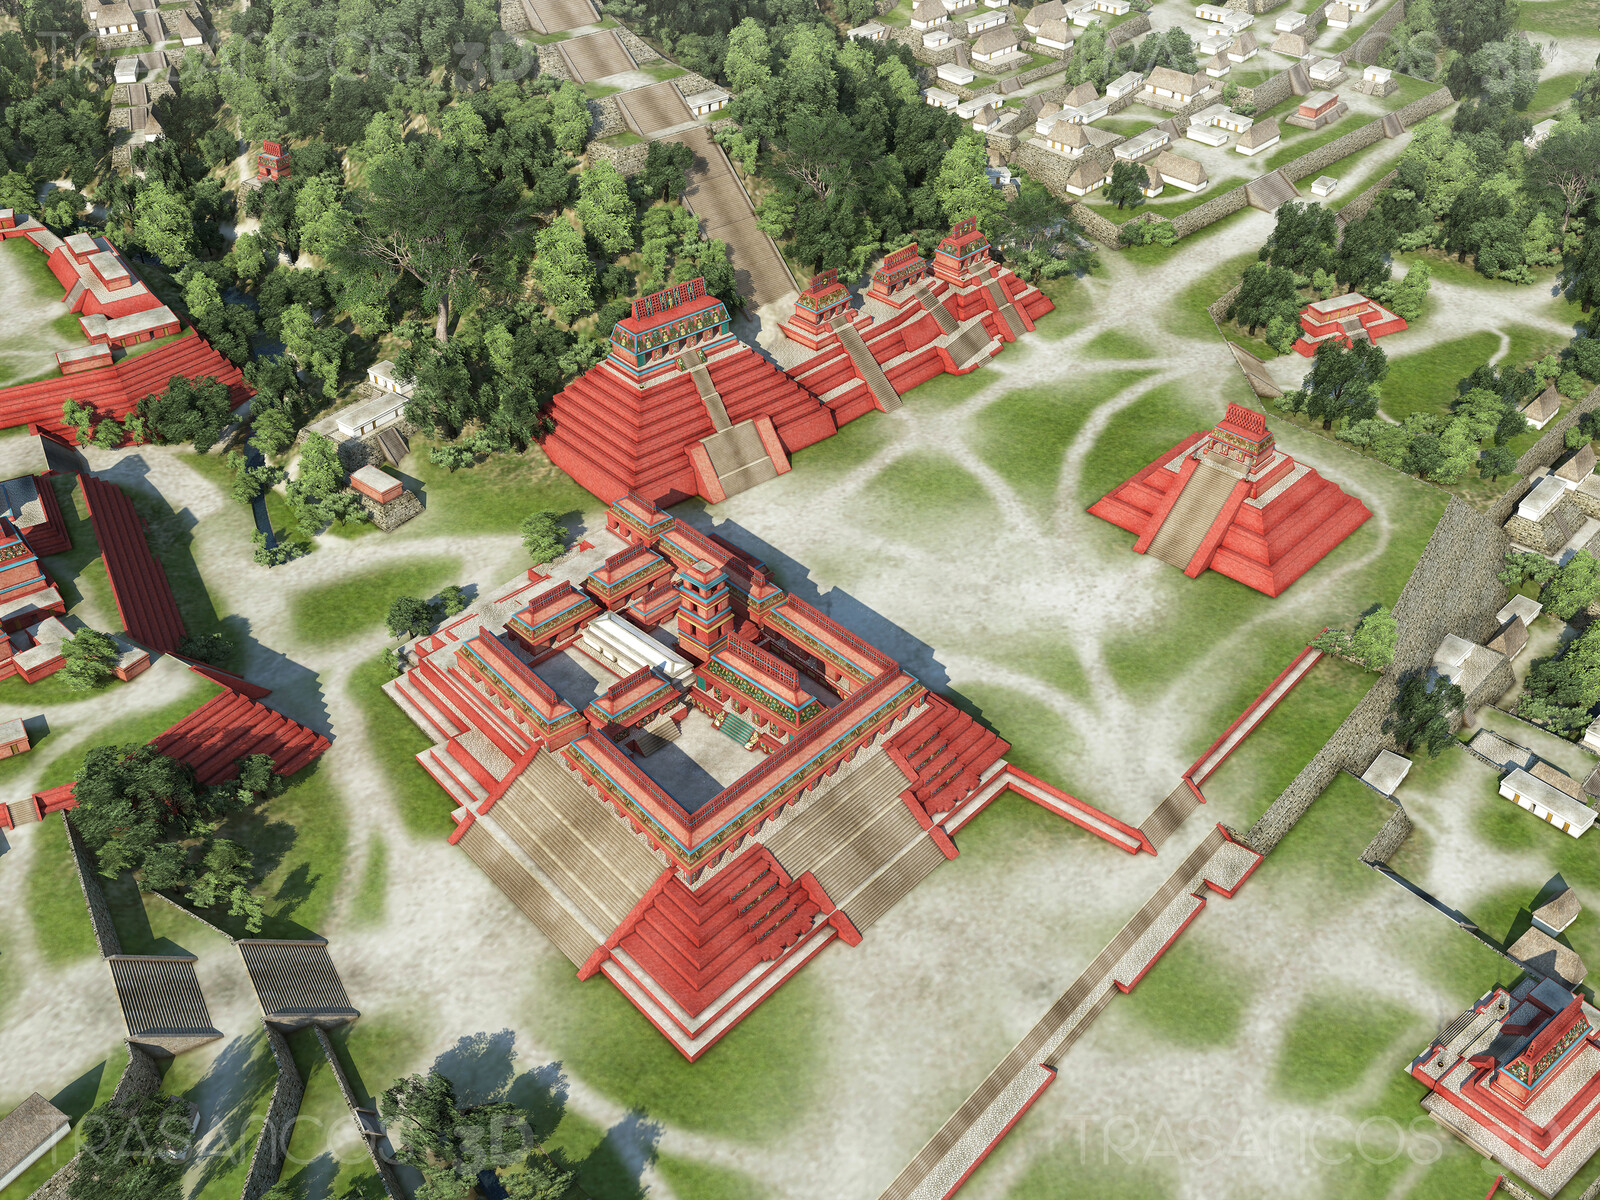 View over the center of the city of Palenque, with the Palace in the middle. Modeled in collaboration with: - Andrés Armesto - Alejandro Soriano - Carlos Paz - Diego Blanco